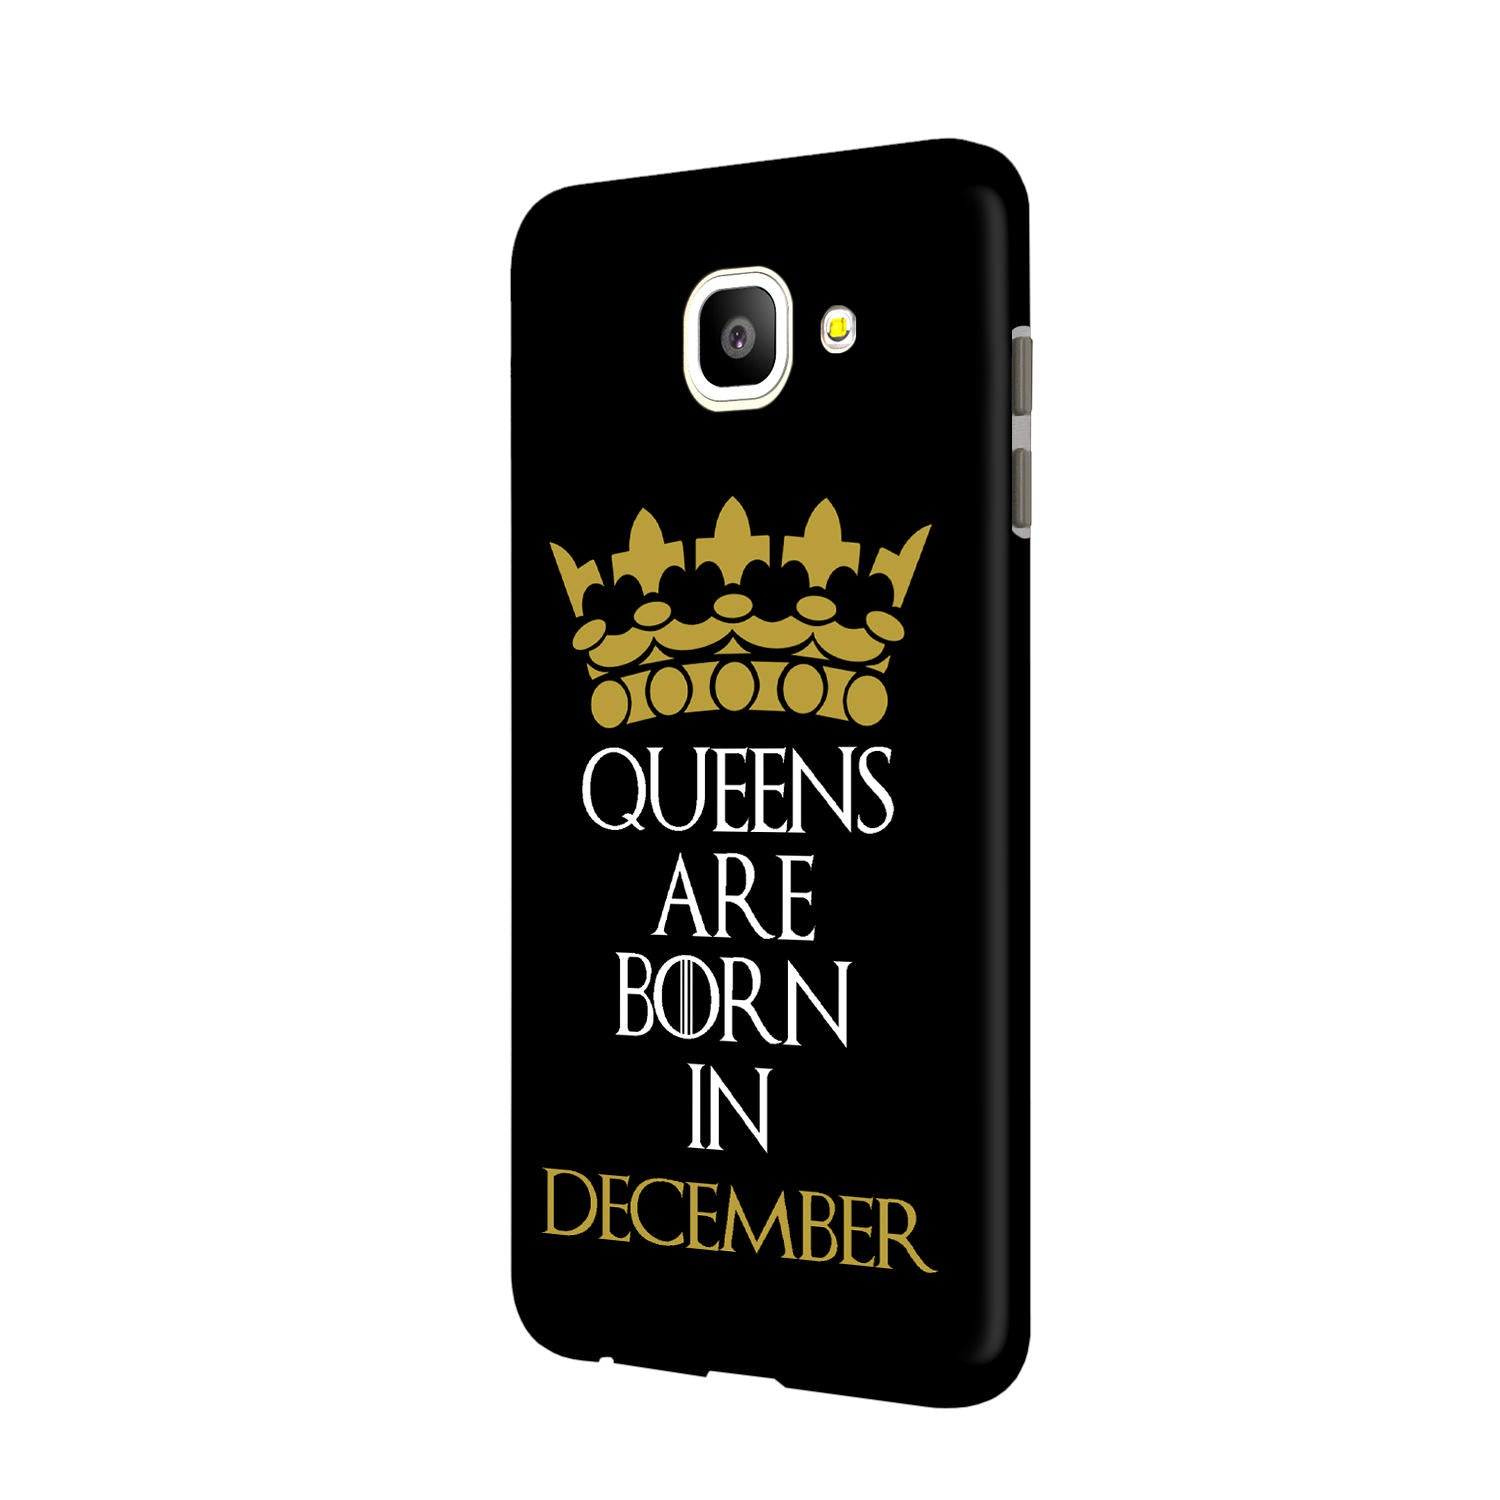 Queens December Samsung Galaxy J7 Max Mobile Cover Case - MADANYU